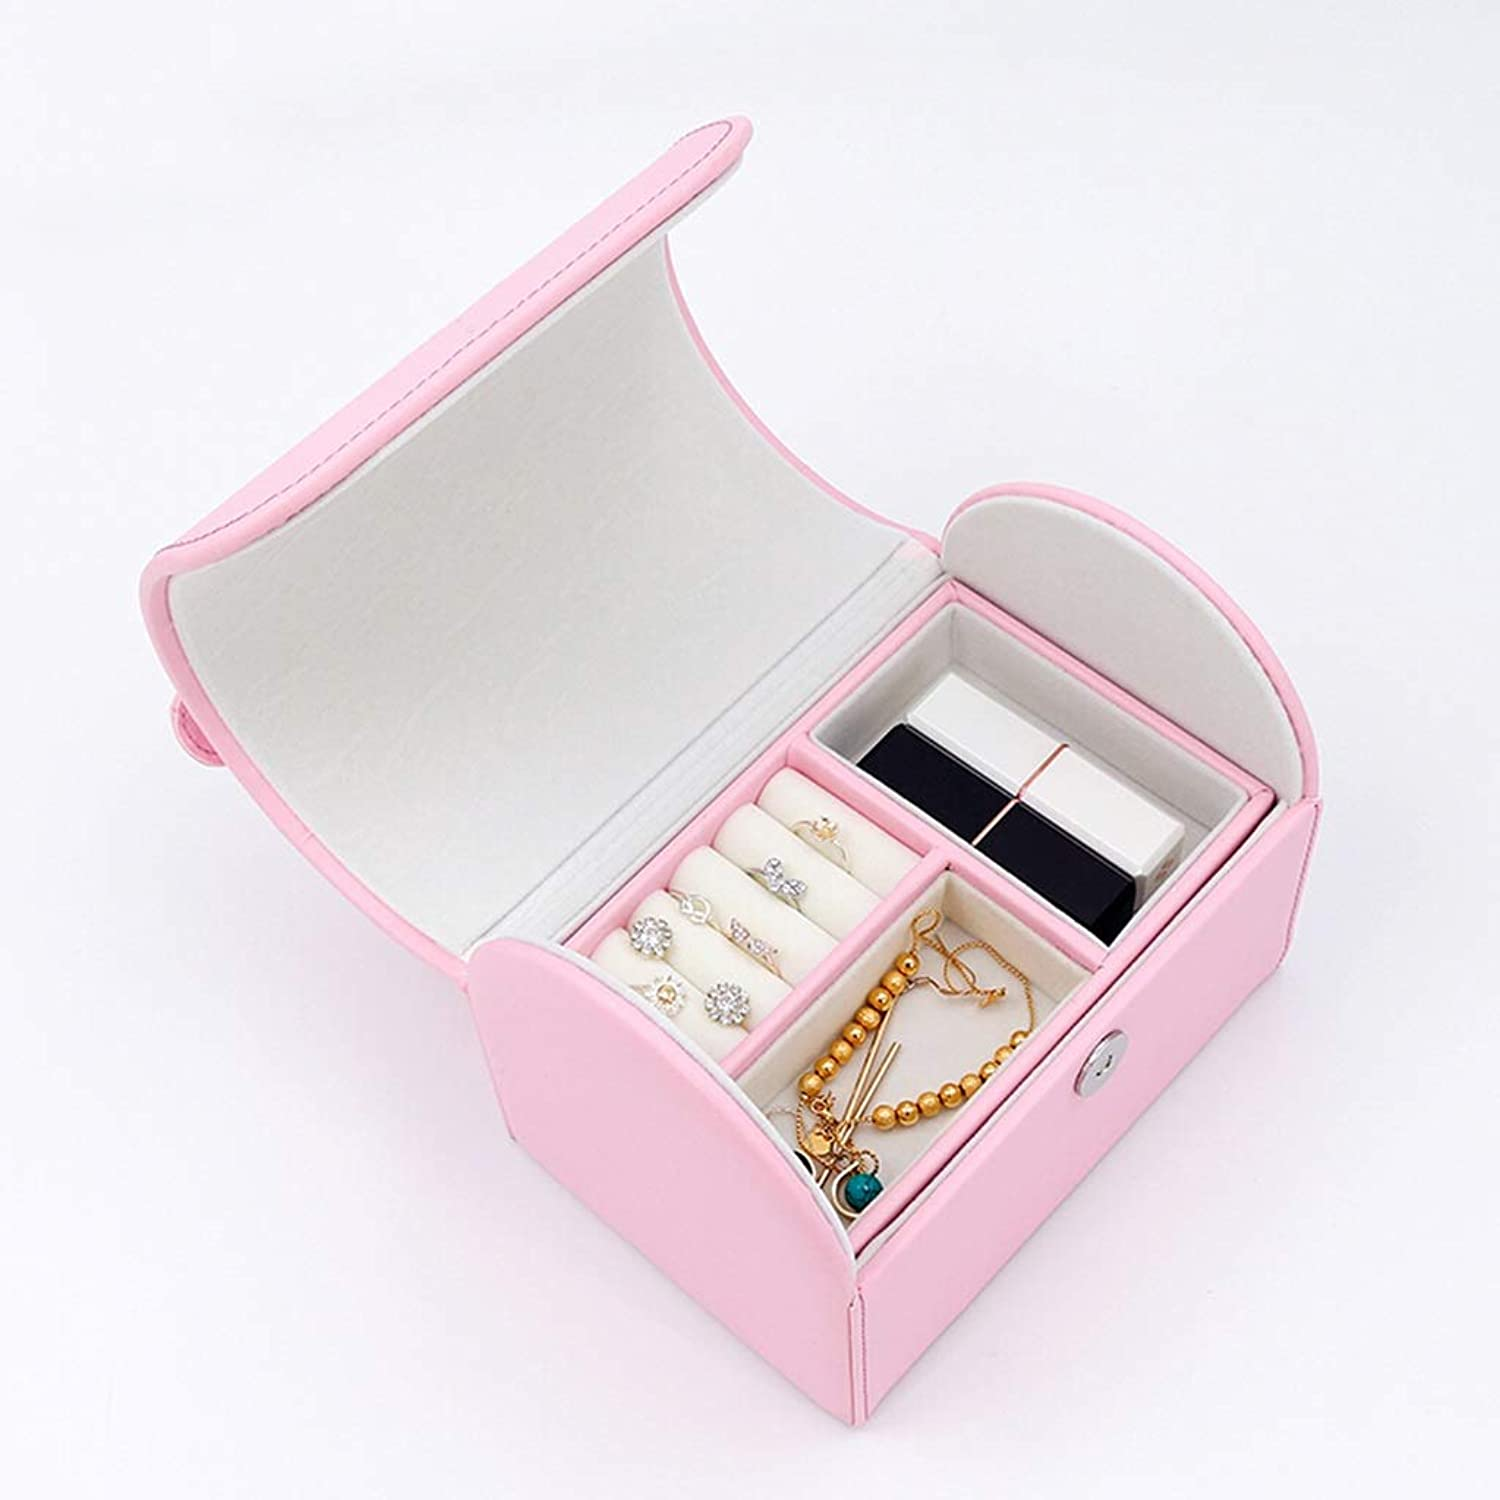 Hang-Dressers Jewelry Box, Imitation Leather Jewellery Case and Display Cabinet 2 Layers with Mirror Ring, Earrings, Necklace, Bracelet Organizer (color   Pink)